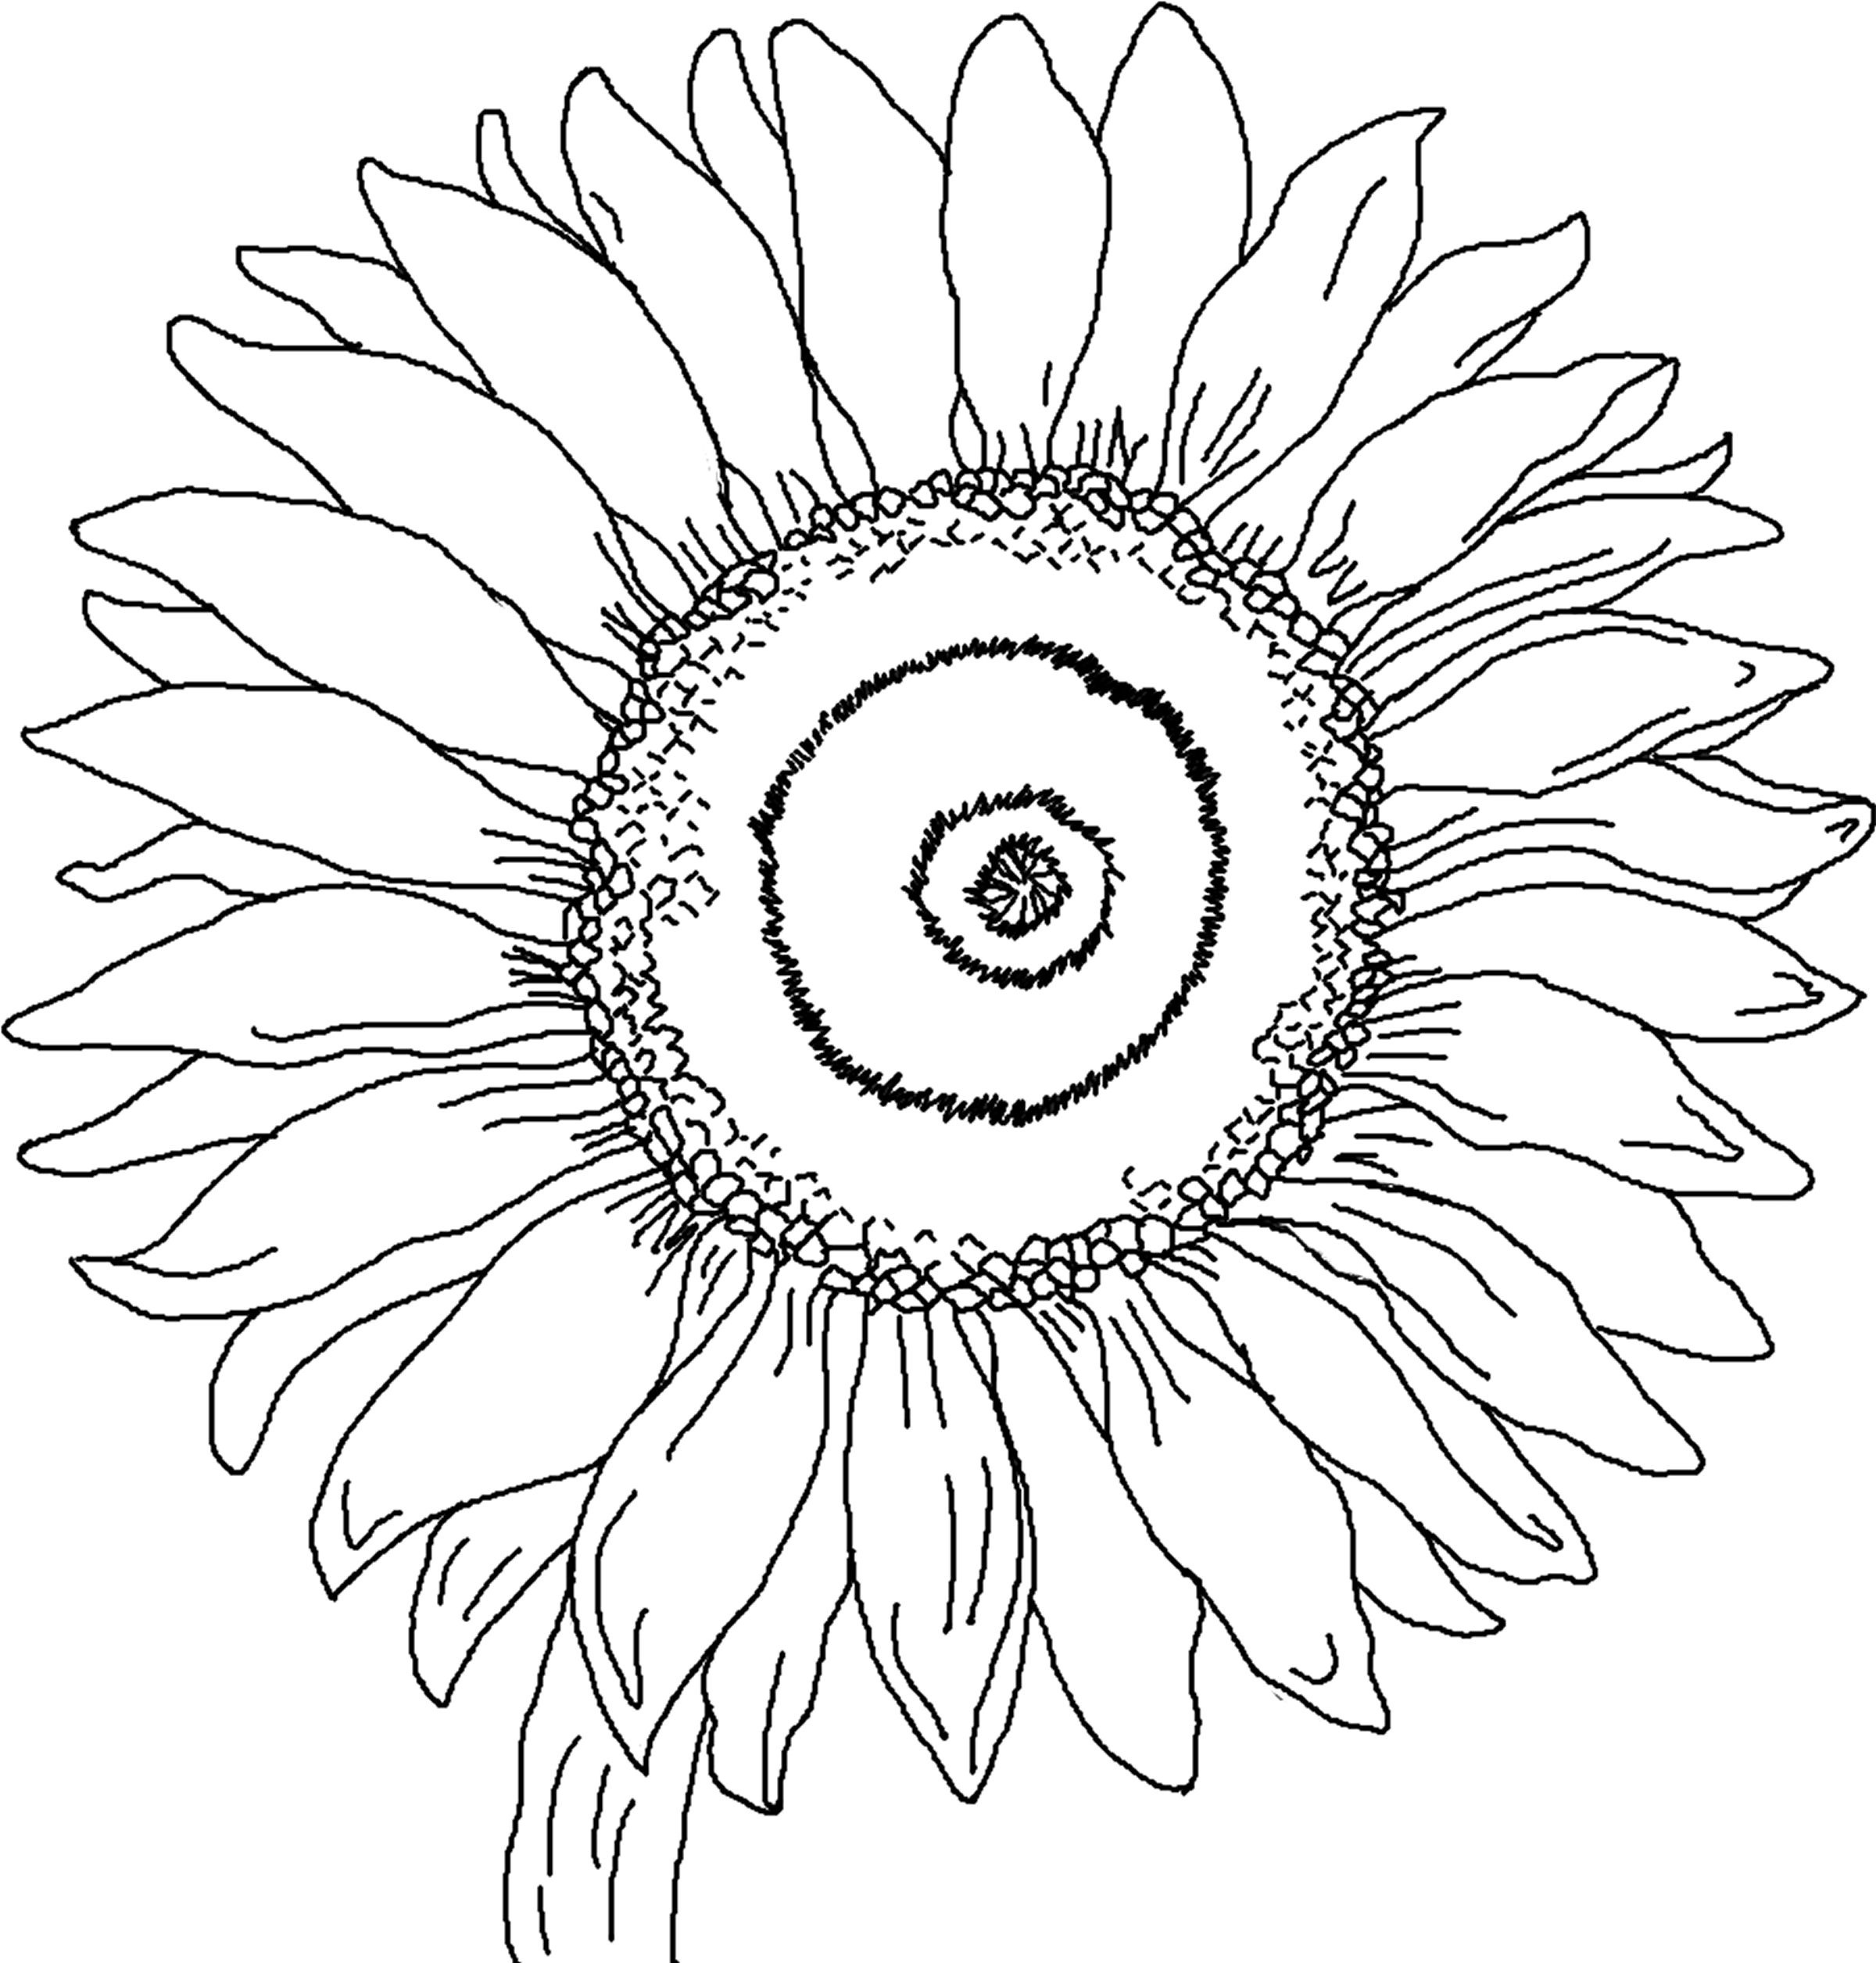 sunflower pictures to colour in sunflower coloring pages to download and print for free colour sunflower in to pictures